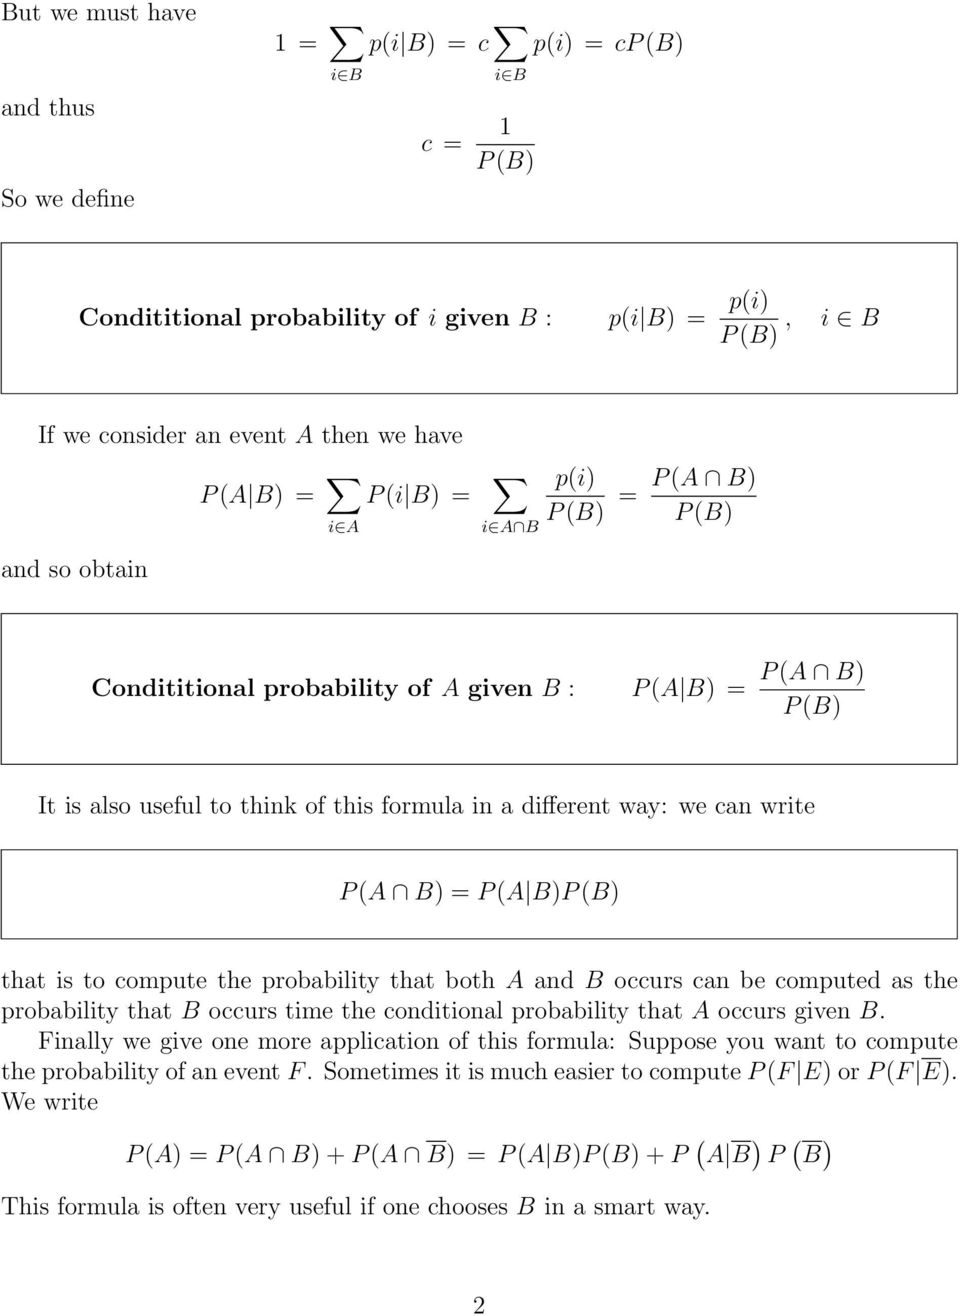 compute the probability that both A and B occurs can be computed as the probability that B occurs time the conditional probability that A occurs given B.